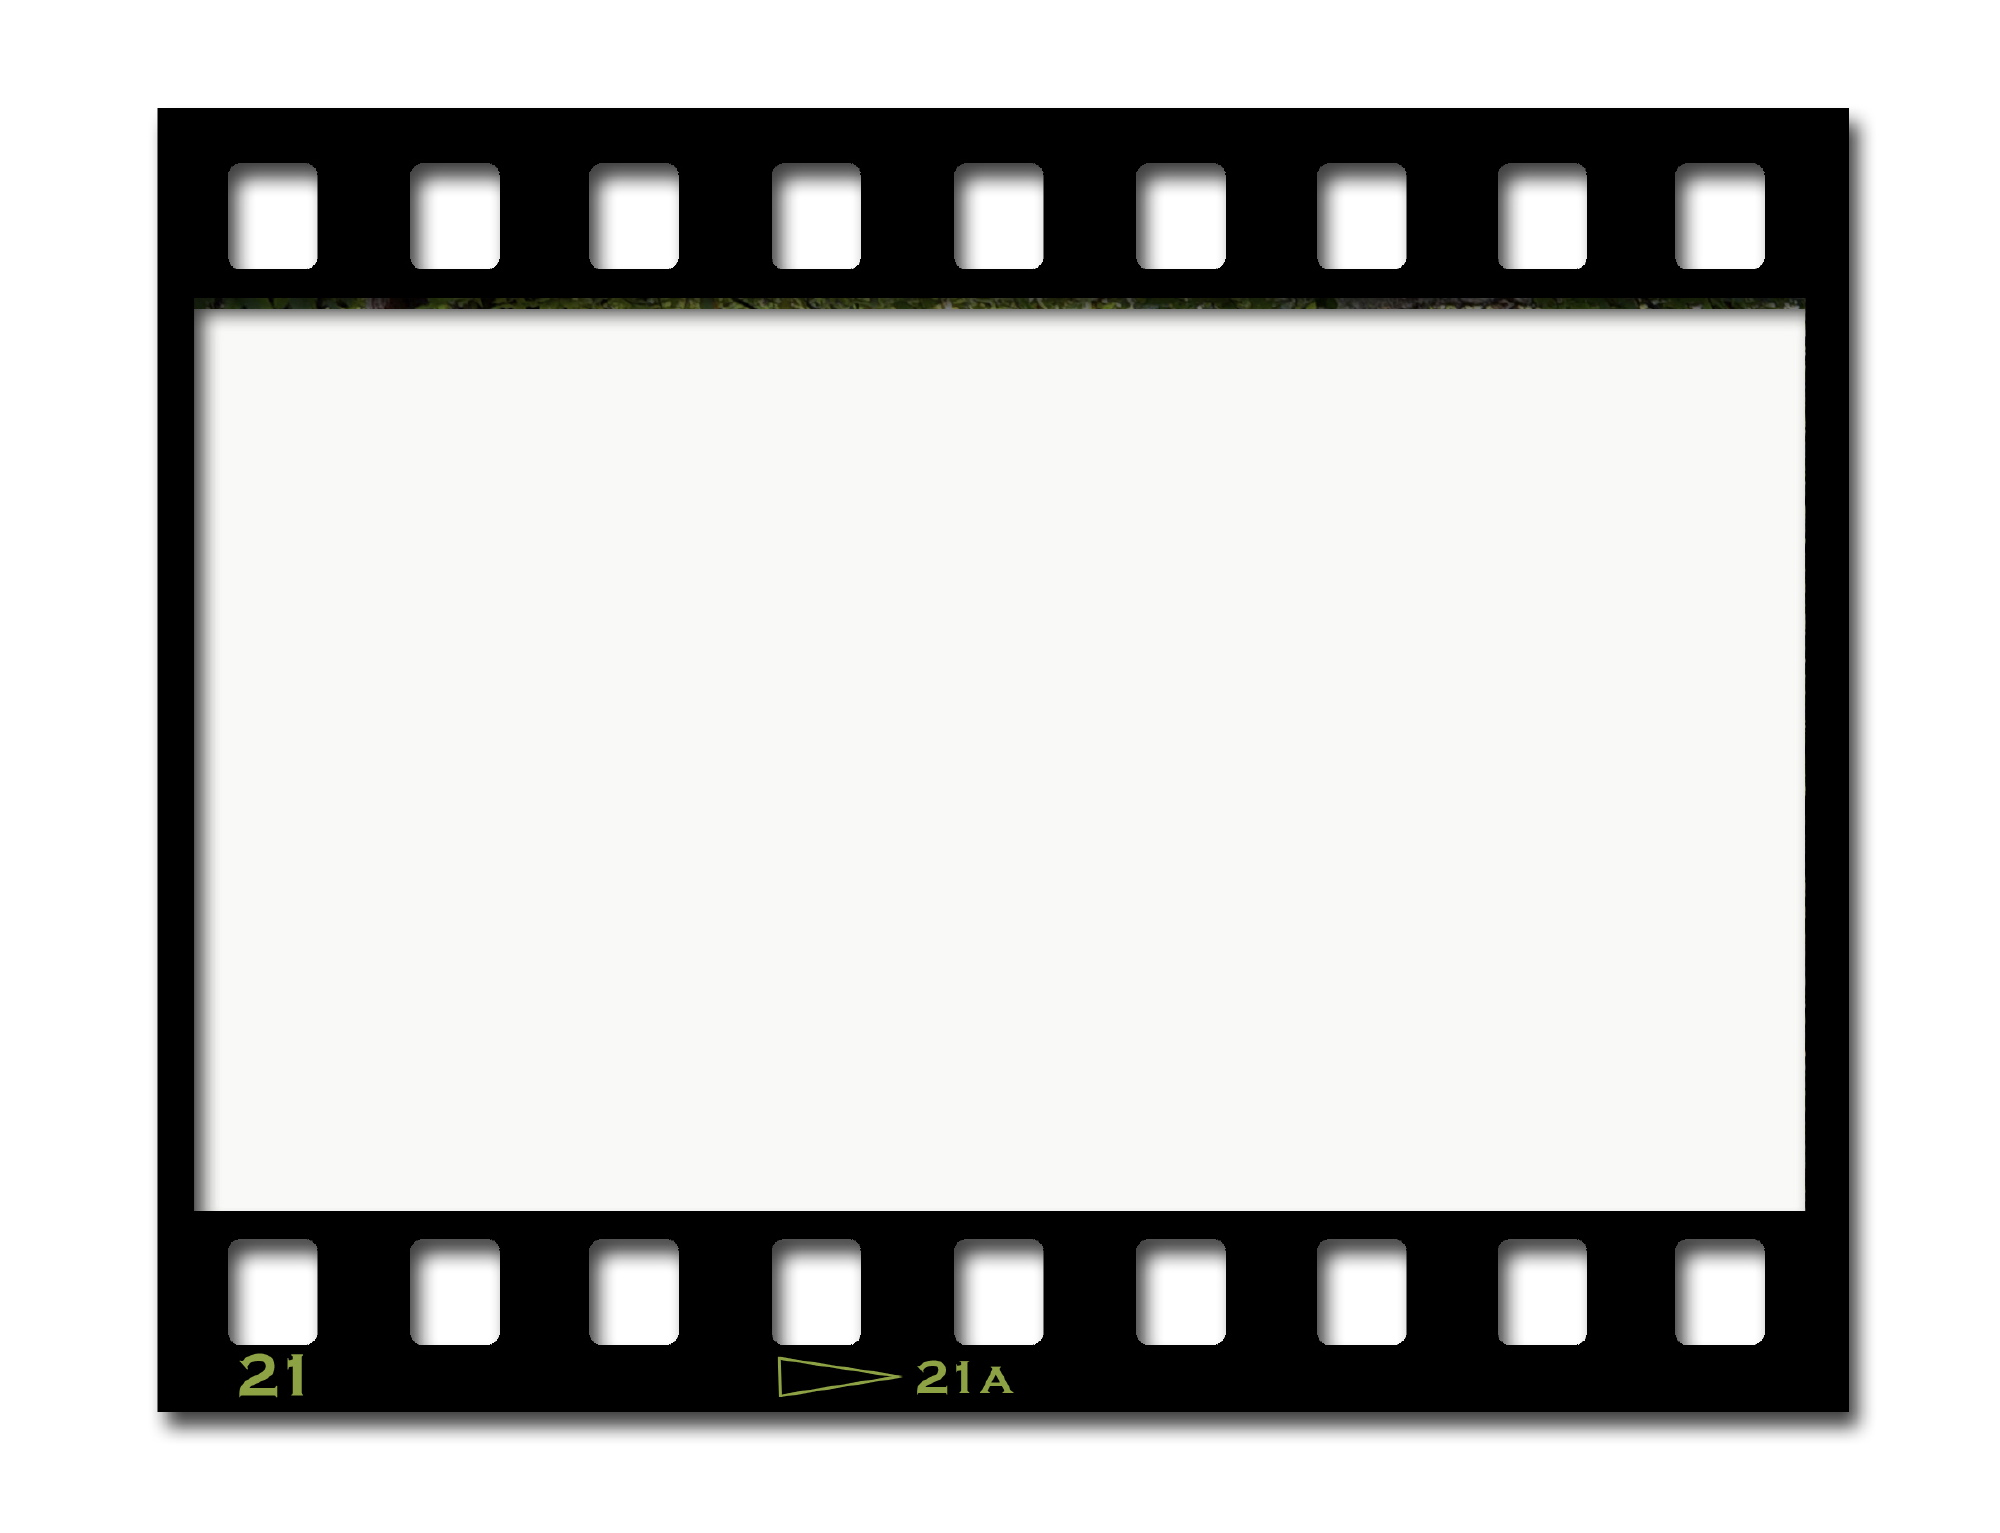 2000x1533 Movie Reel Movie Film Strip Clip Art Image 3